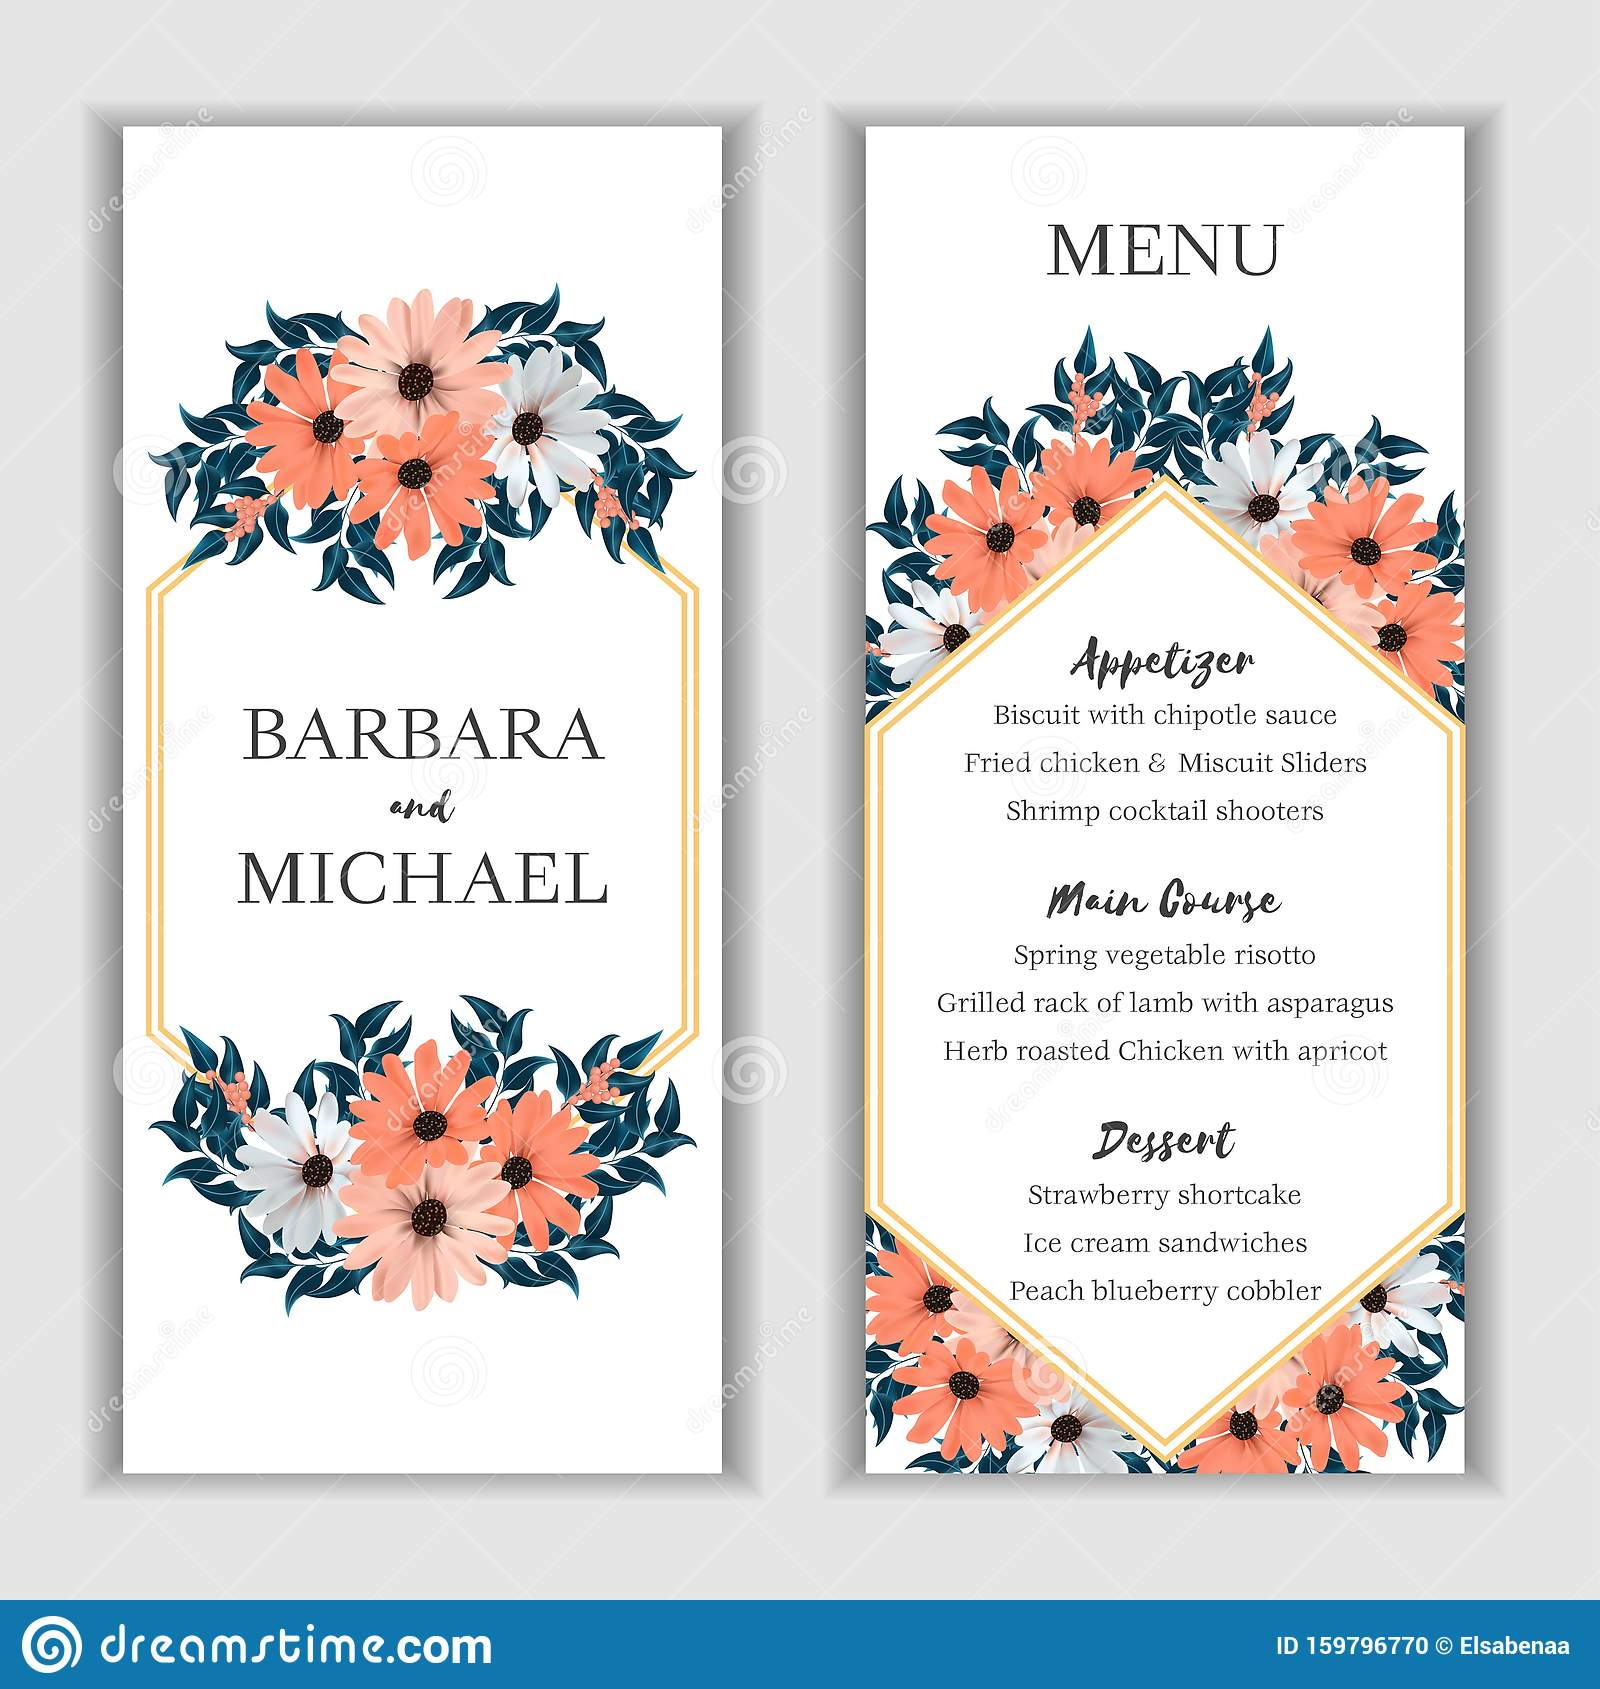 Beige Daisy Floral Wedding Menu Card Template Stock Illustration Illustration Of Card Brown 159796770 Strawberry has brought quite a bit of happiness to daisy until alan had killed strawberry. https www dreamstime com beige daisy floral wedding menu card template bridal menu card template orange white beige daisy flower bouquet decoration image159796770